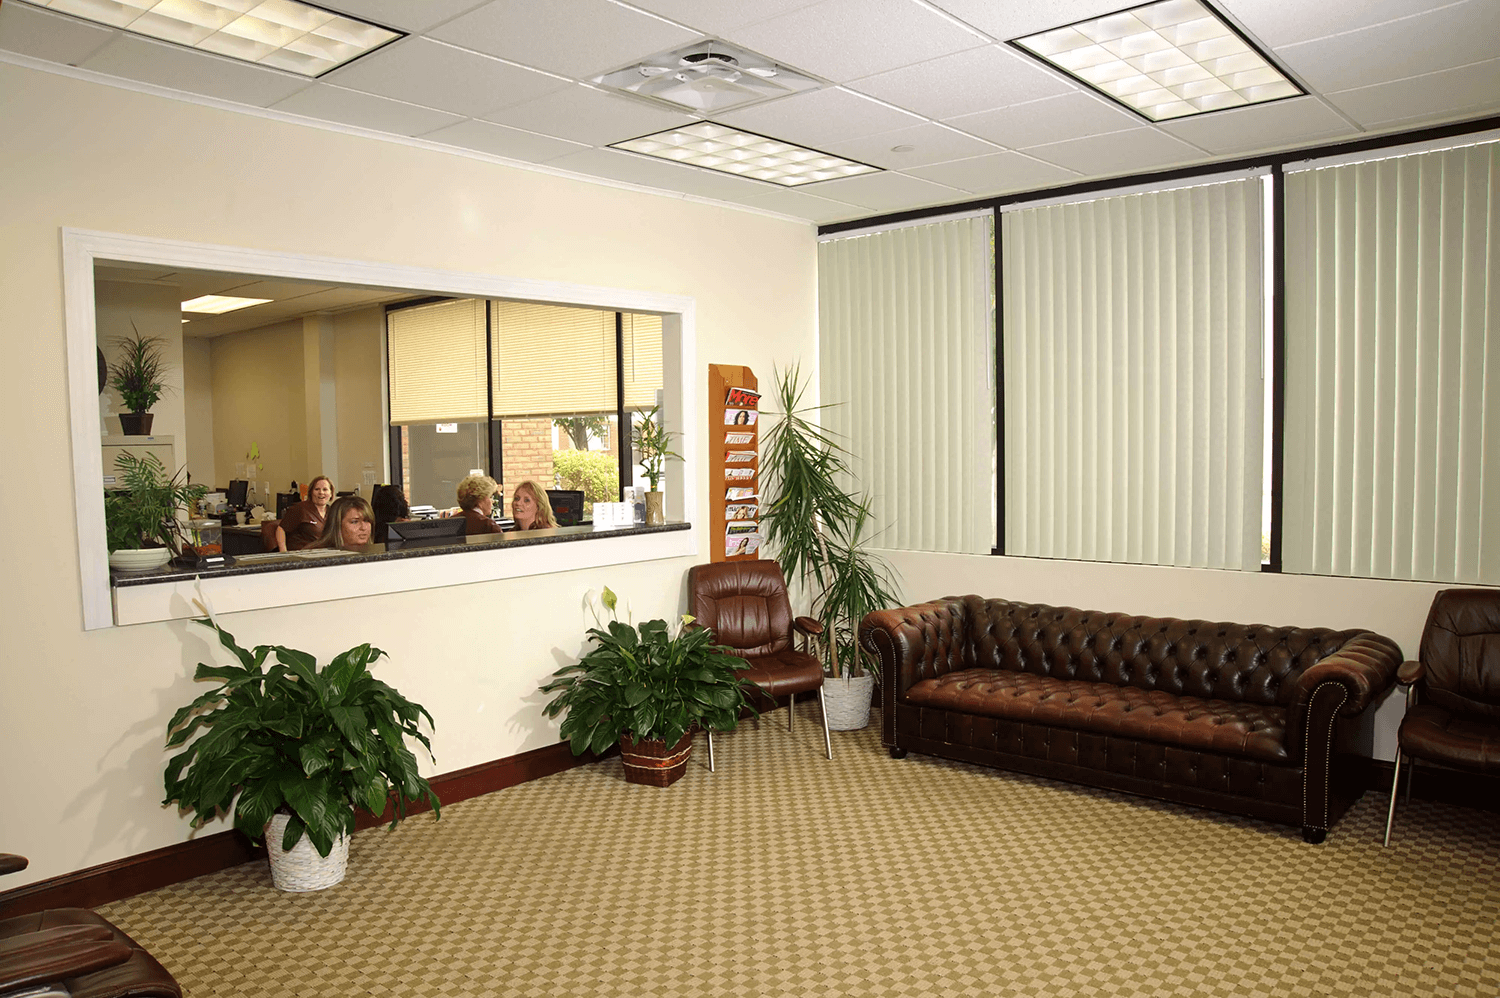 View of reception area at Livingston Podiatry Associates